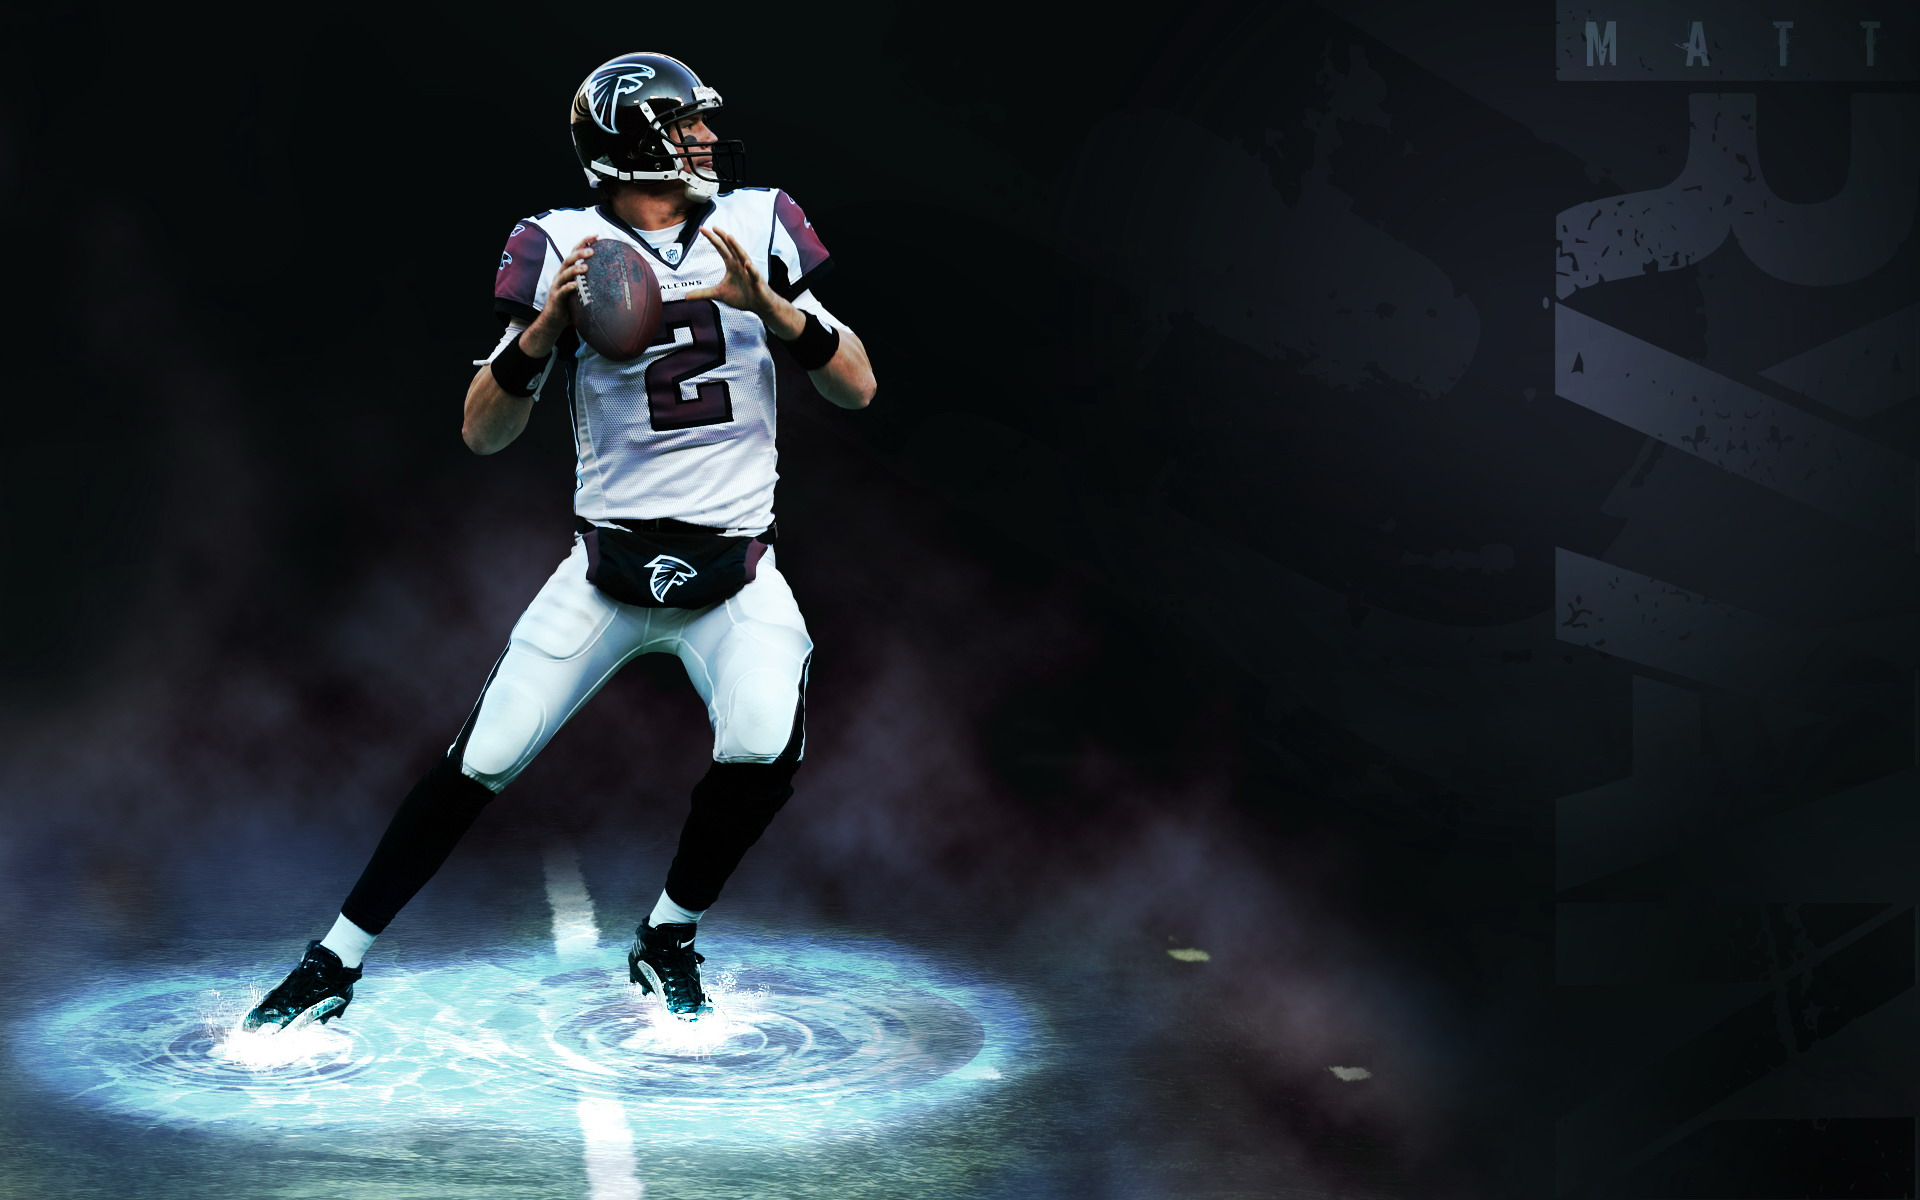 american football wallpaper free - photo #13